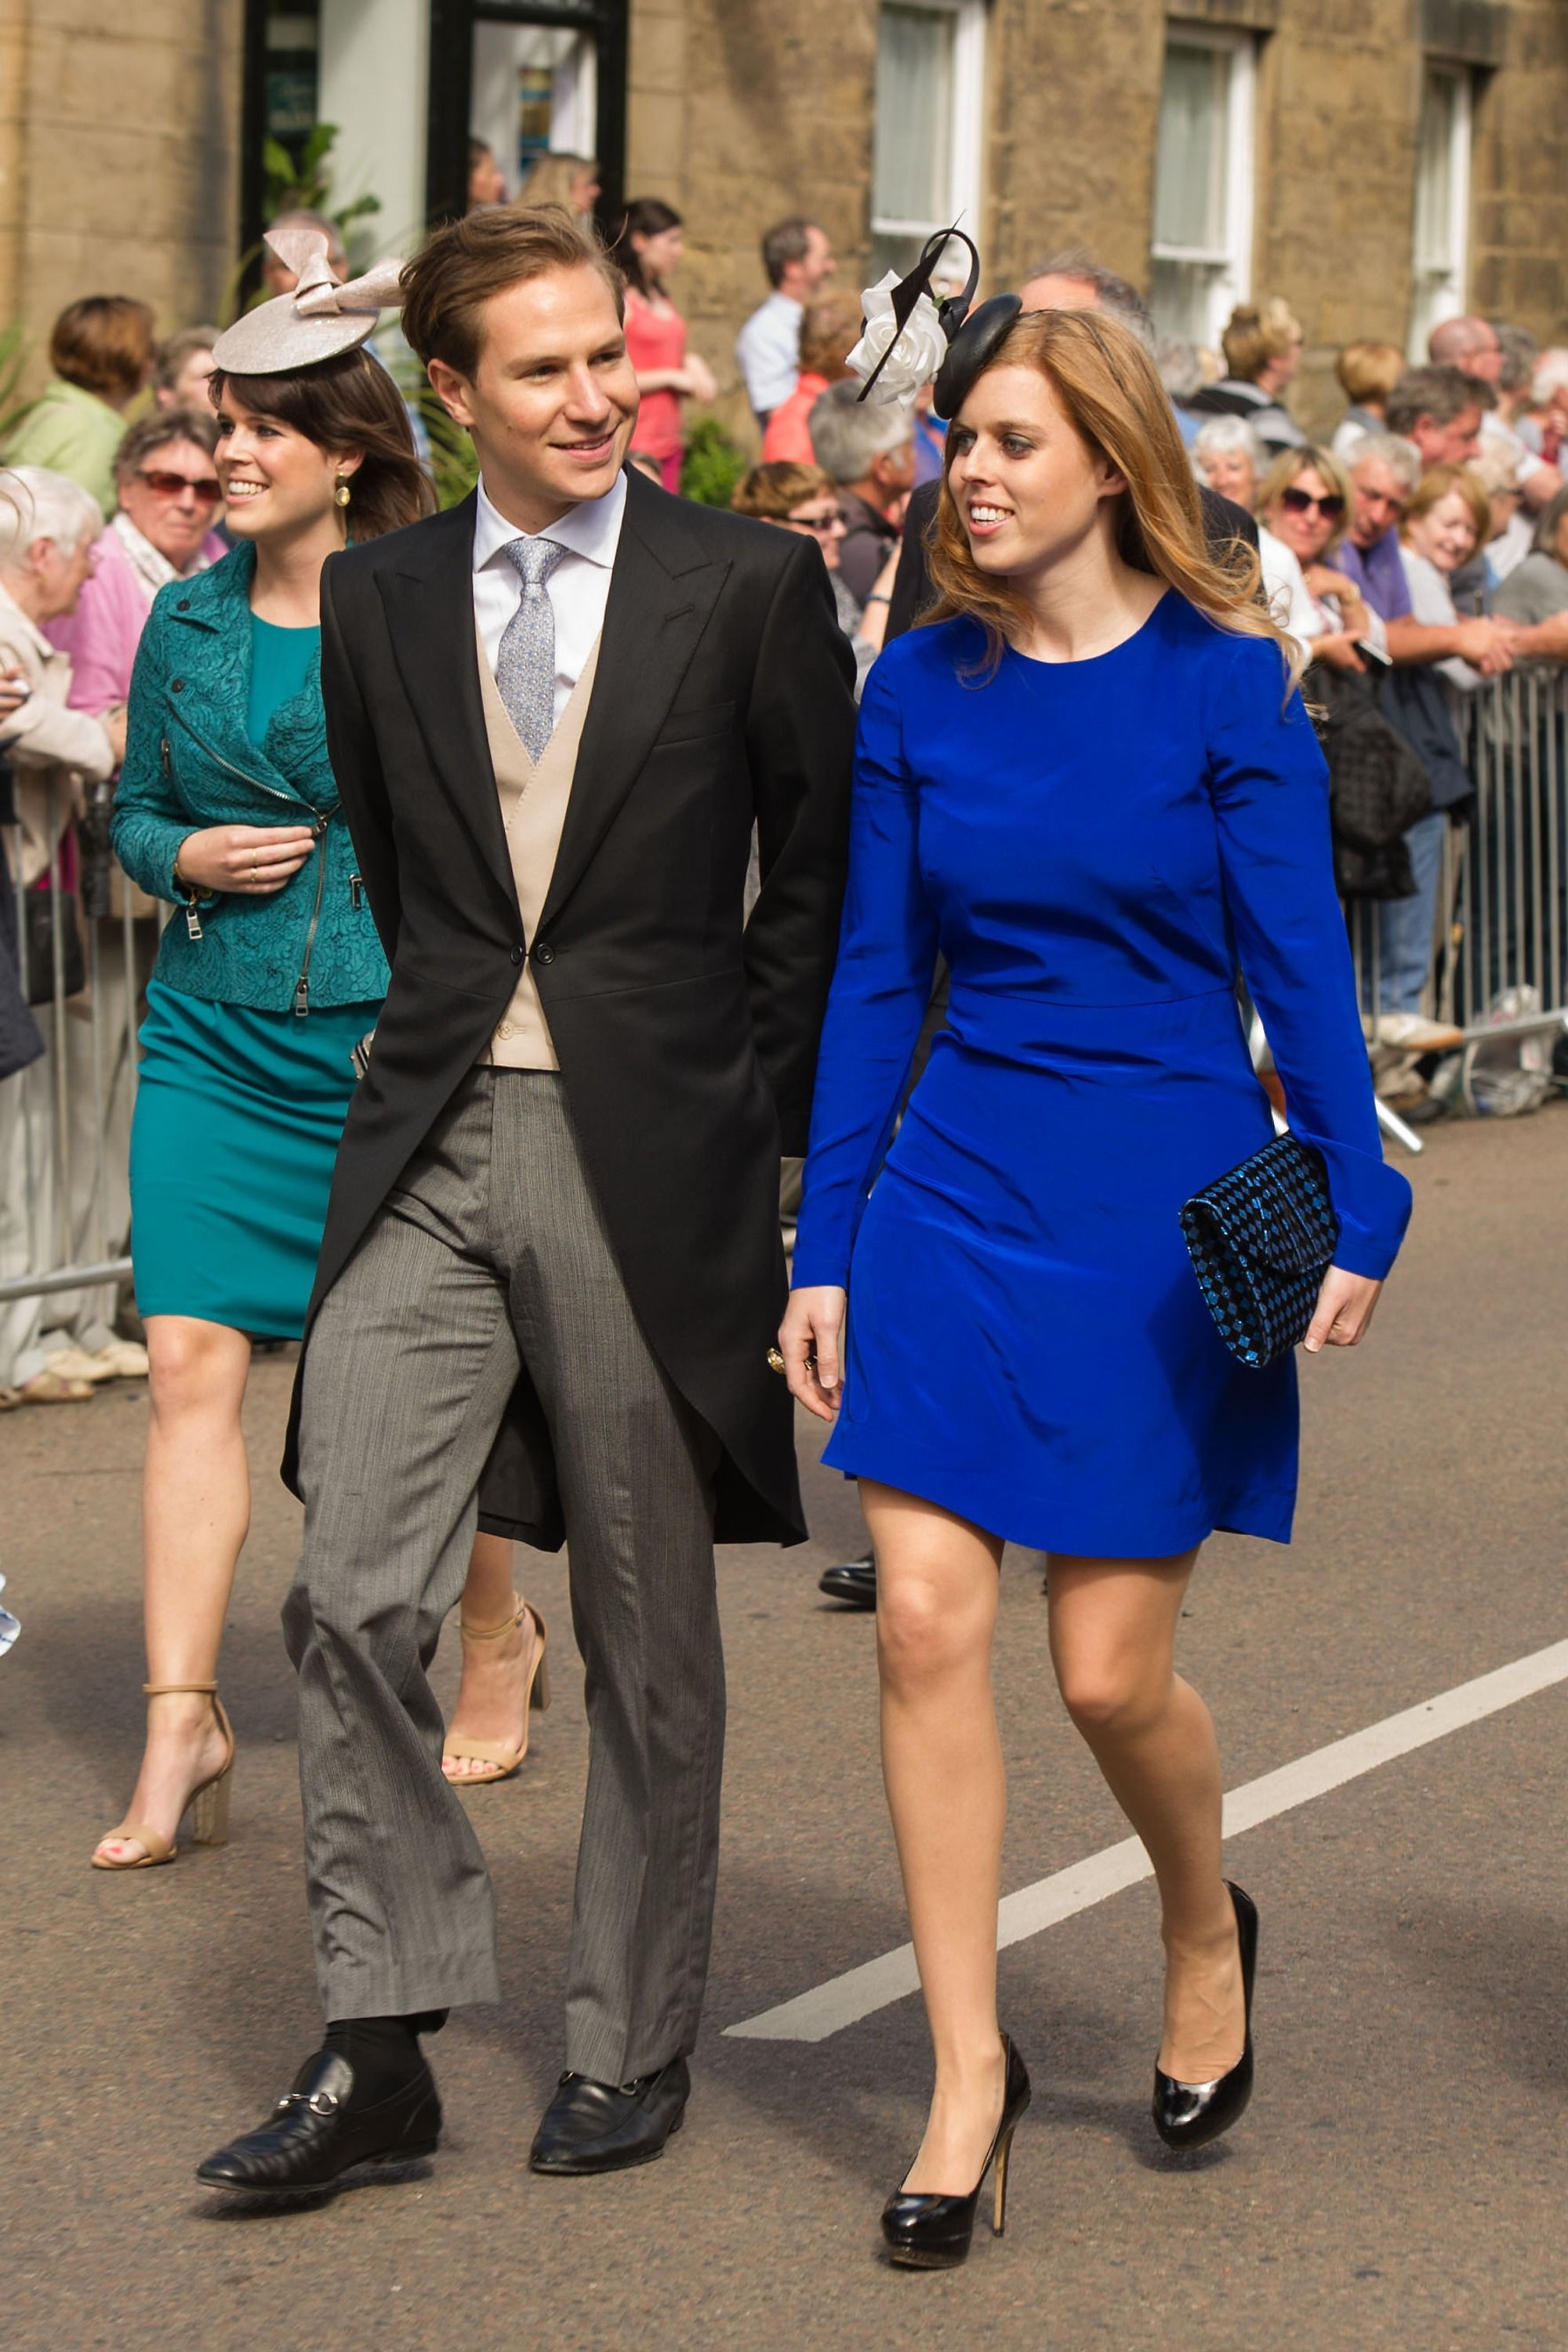 What Royal Family Wears To Weddings 42 Best Wedding Guest Looks Kate Embroidery Blouse In Blue Beatrice Clothing